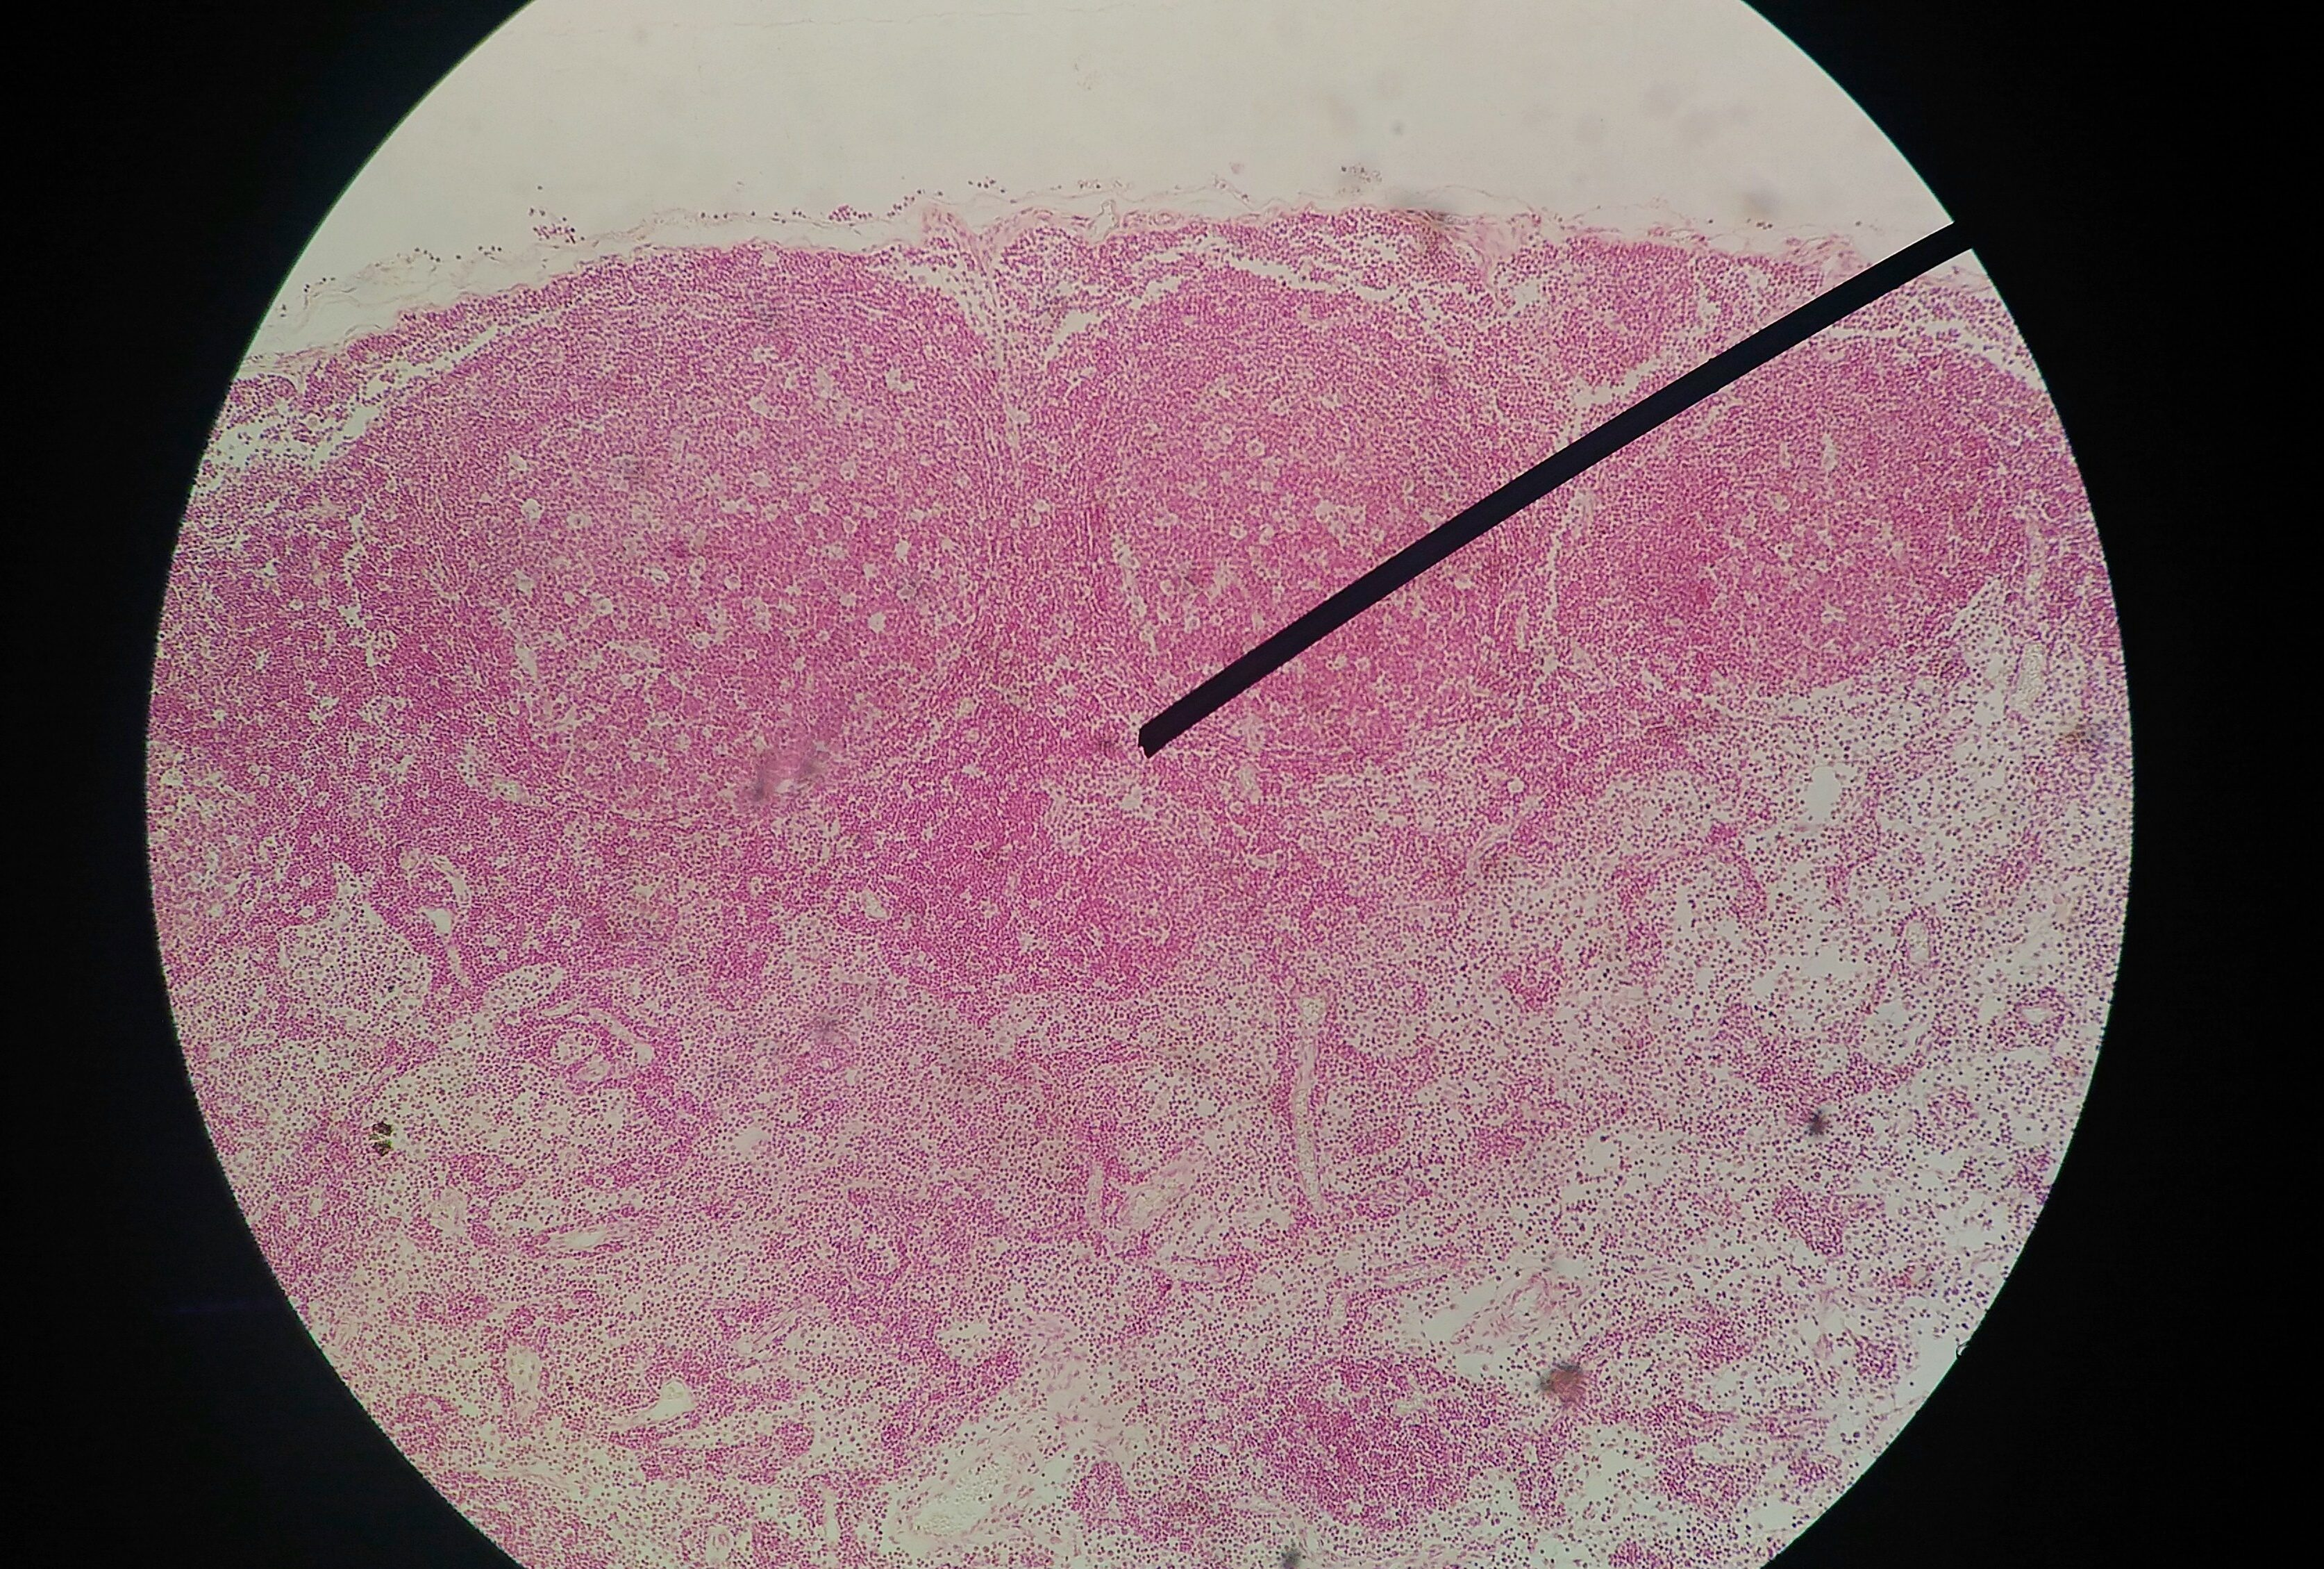 mouth and throat cancer from hpv